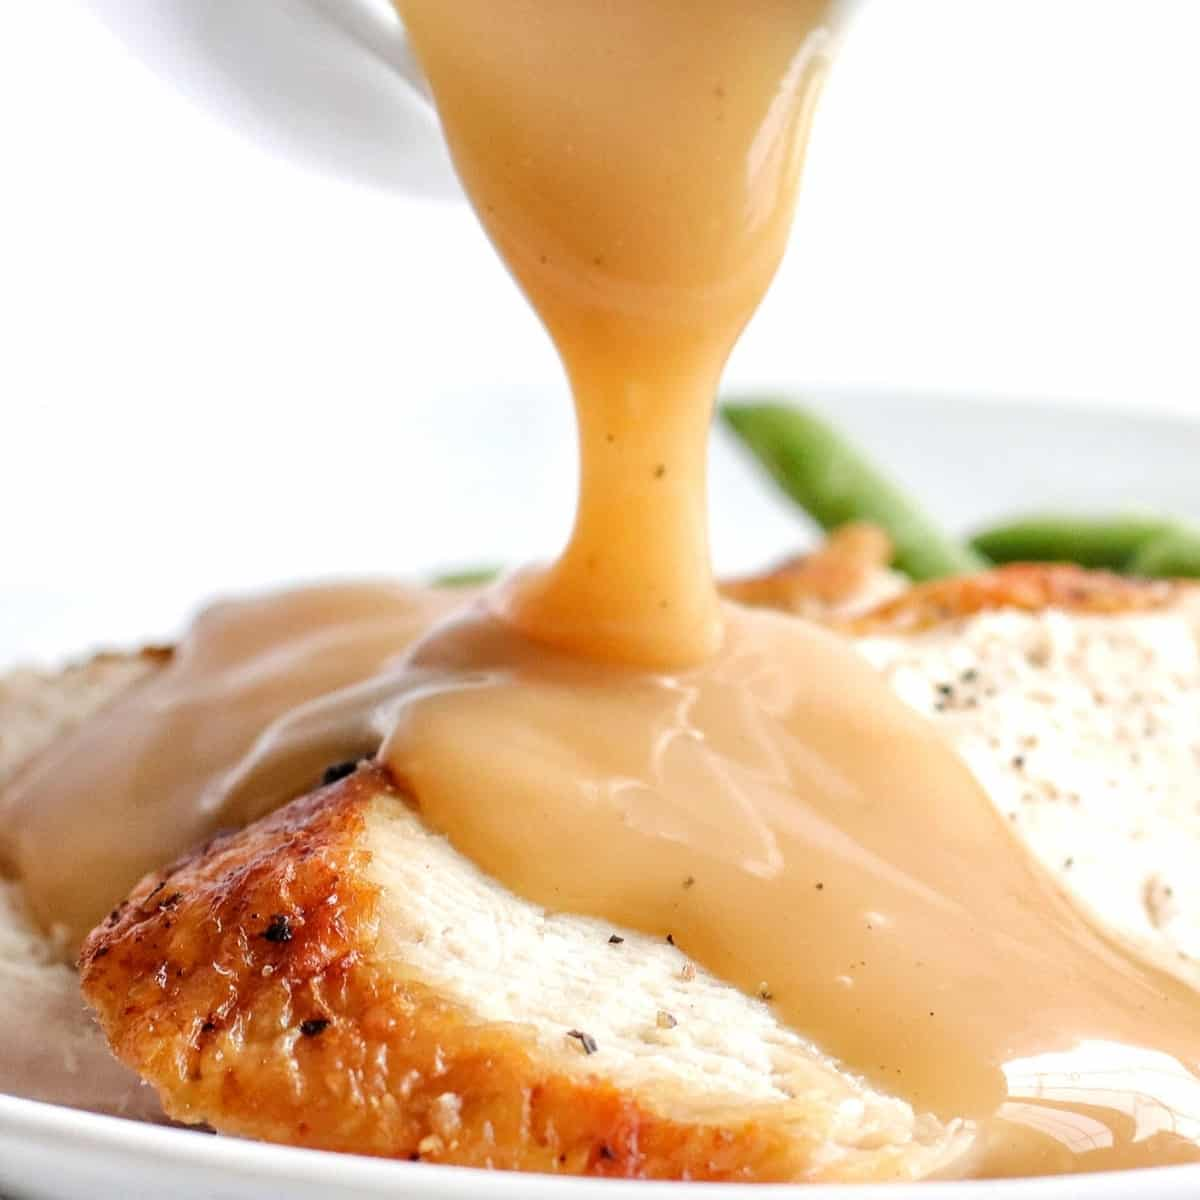 air fryer turkey slices with gravy being poured on top